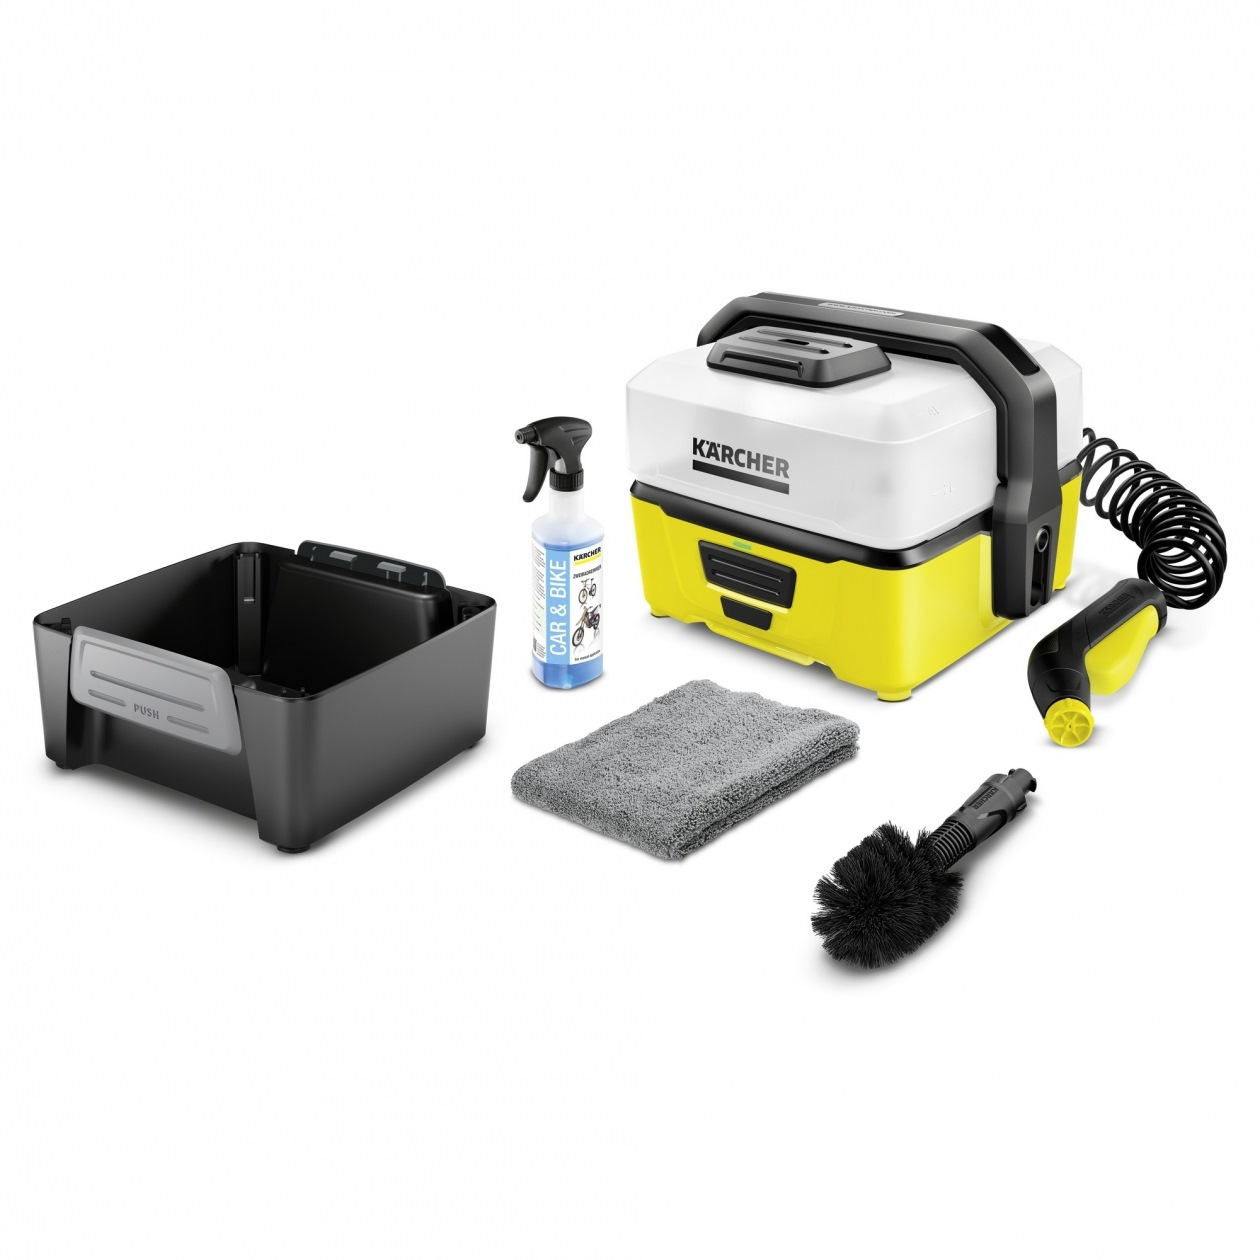 Karcher 5 Bar Outdoor Battery Mobile Washer OC3